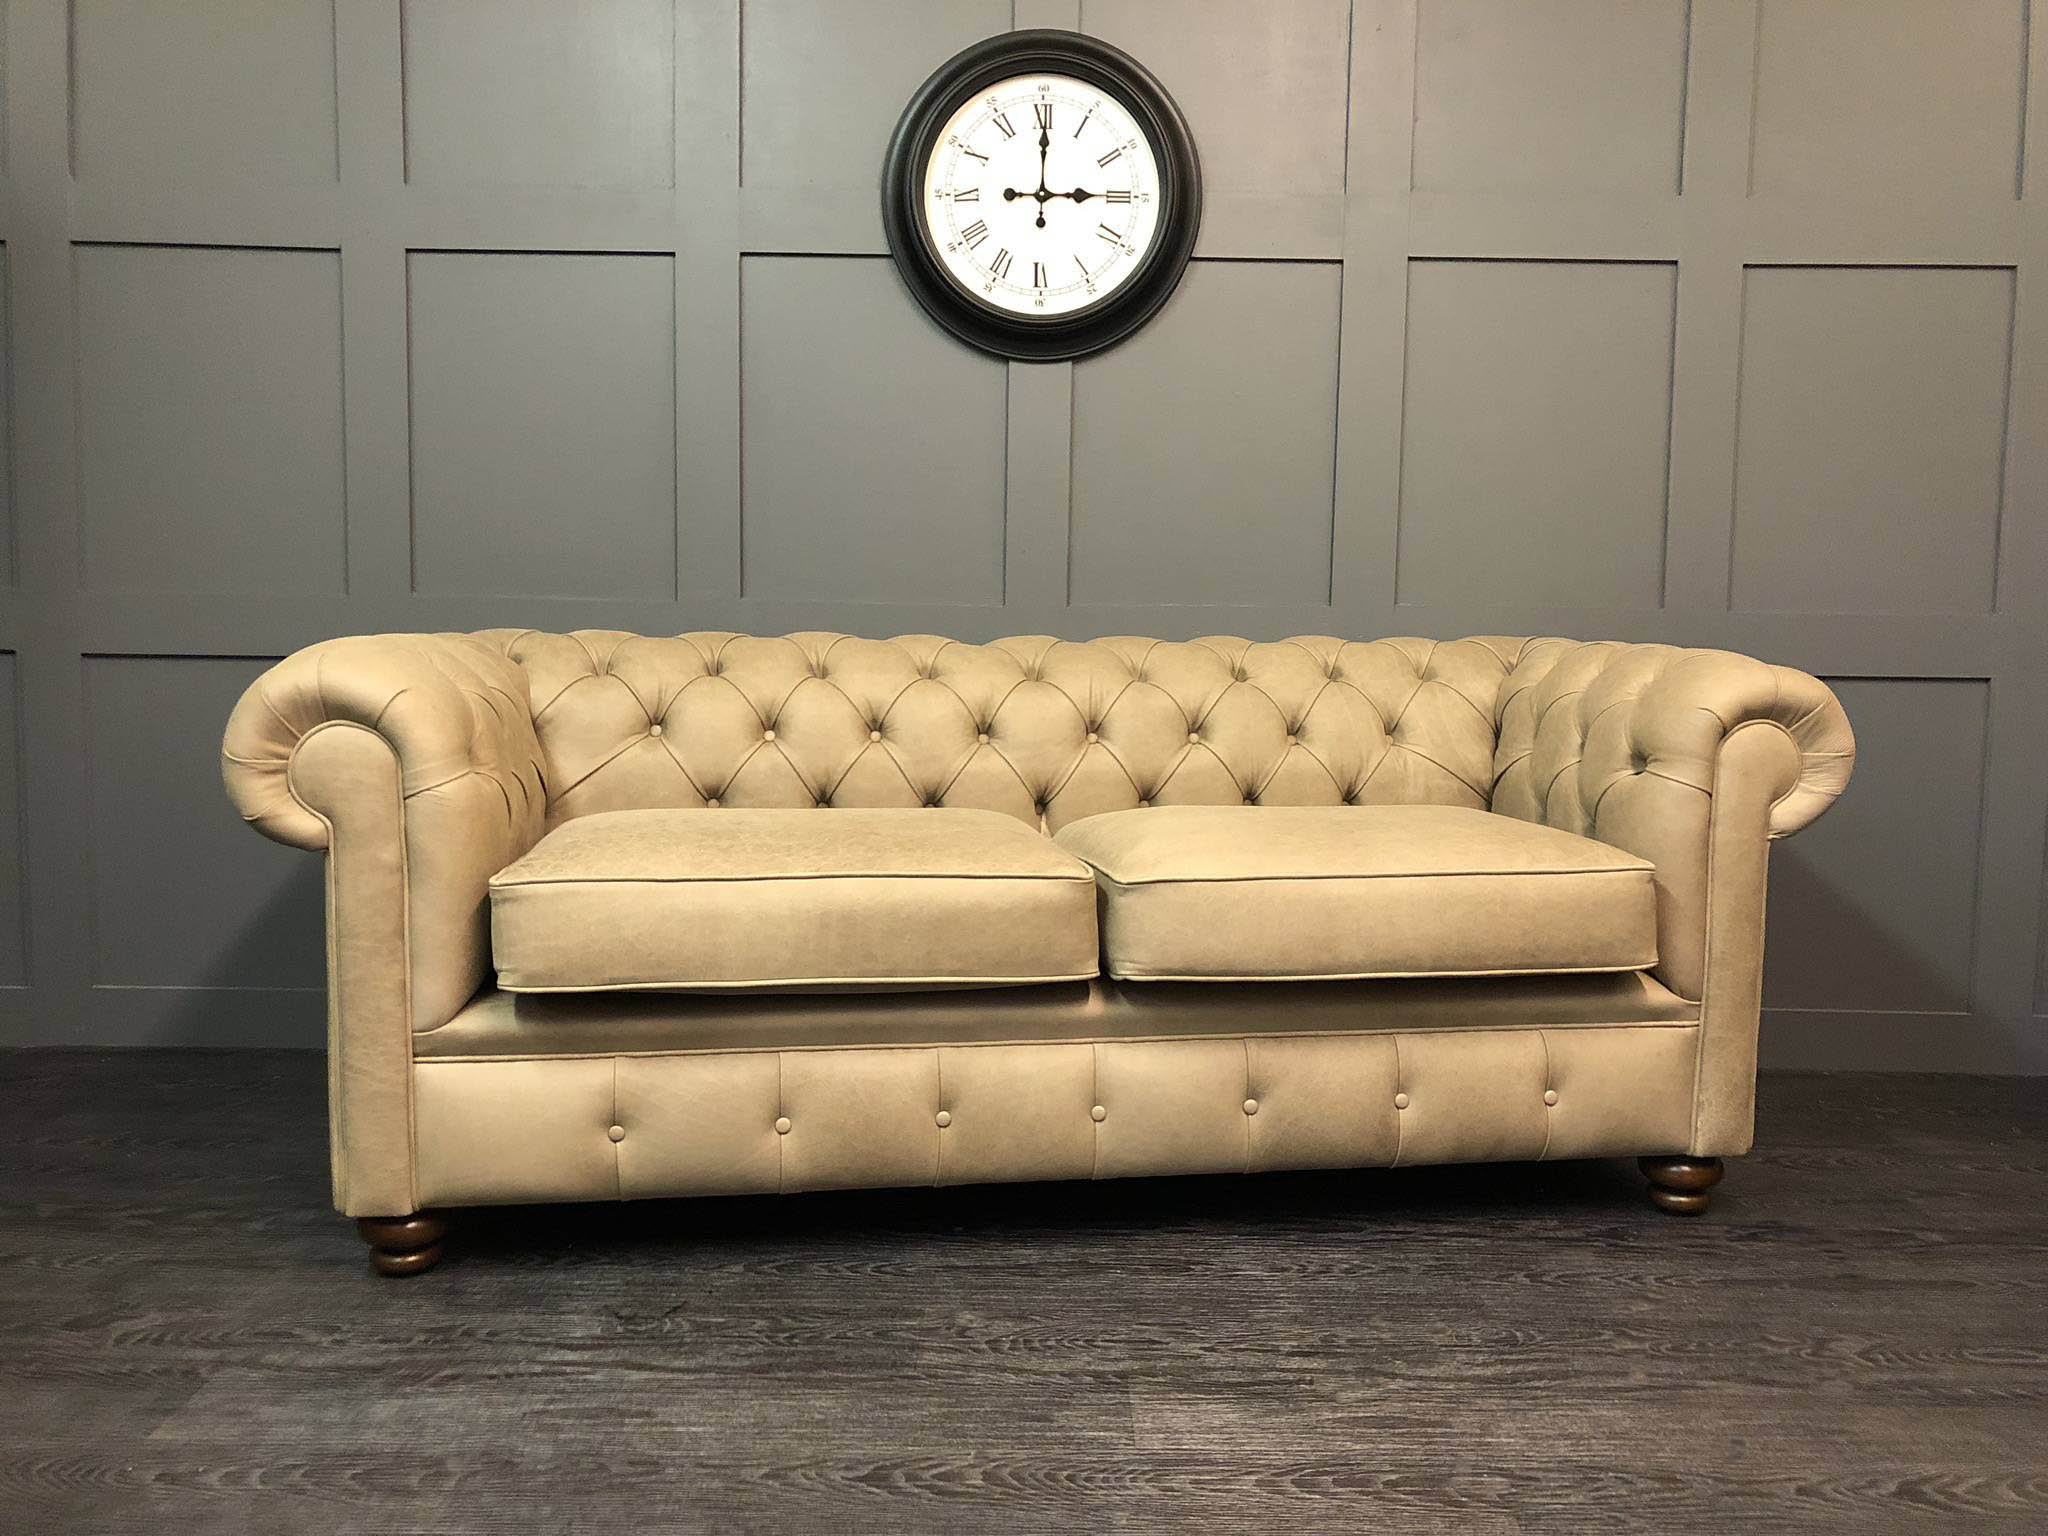 Selvaggio Hare Essex 3 Seat Sofa